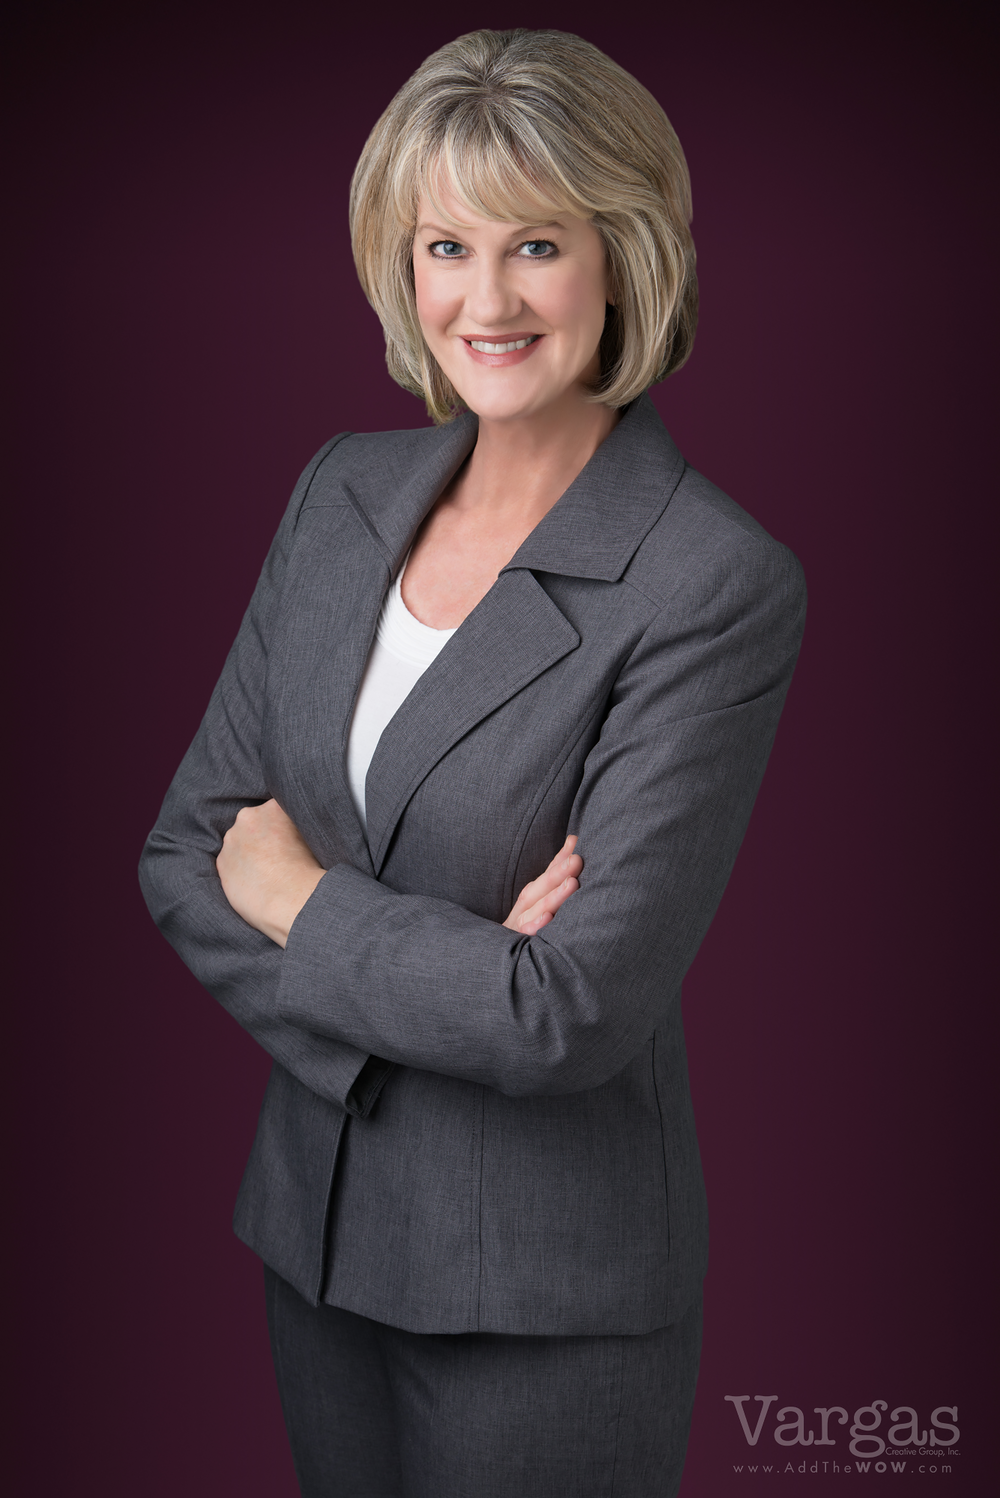 Susan-Hirzel-Berkshire-Hathaway-Real-Estate-Agent-Business-Portrait.png